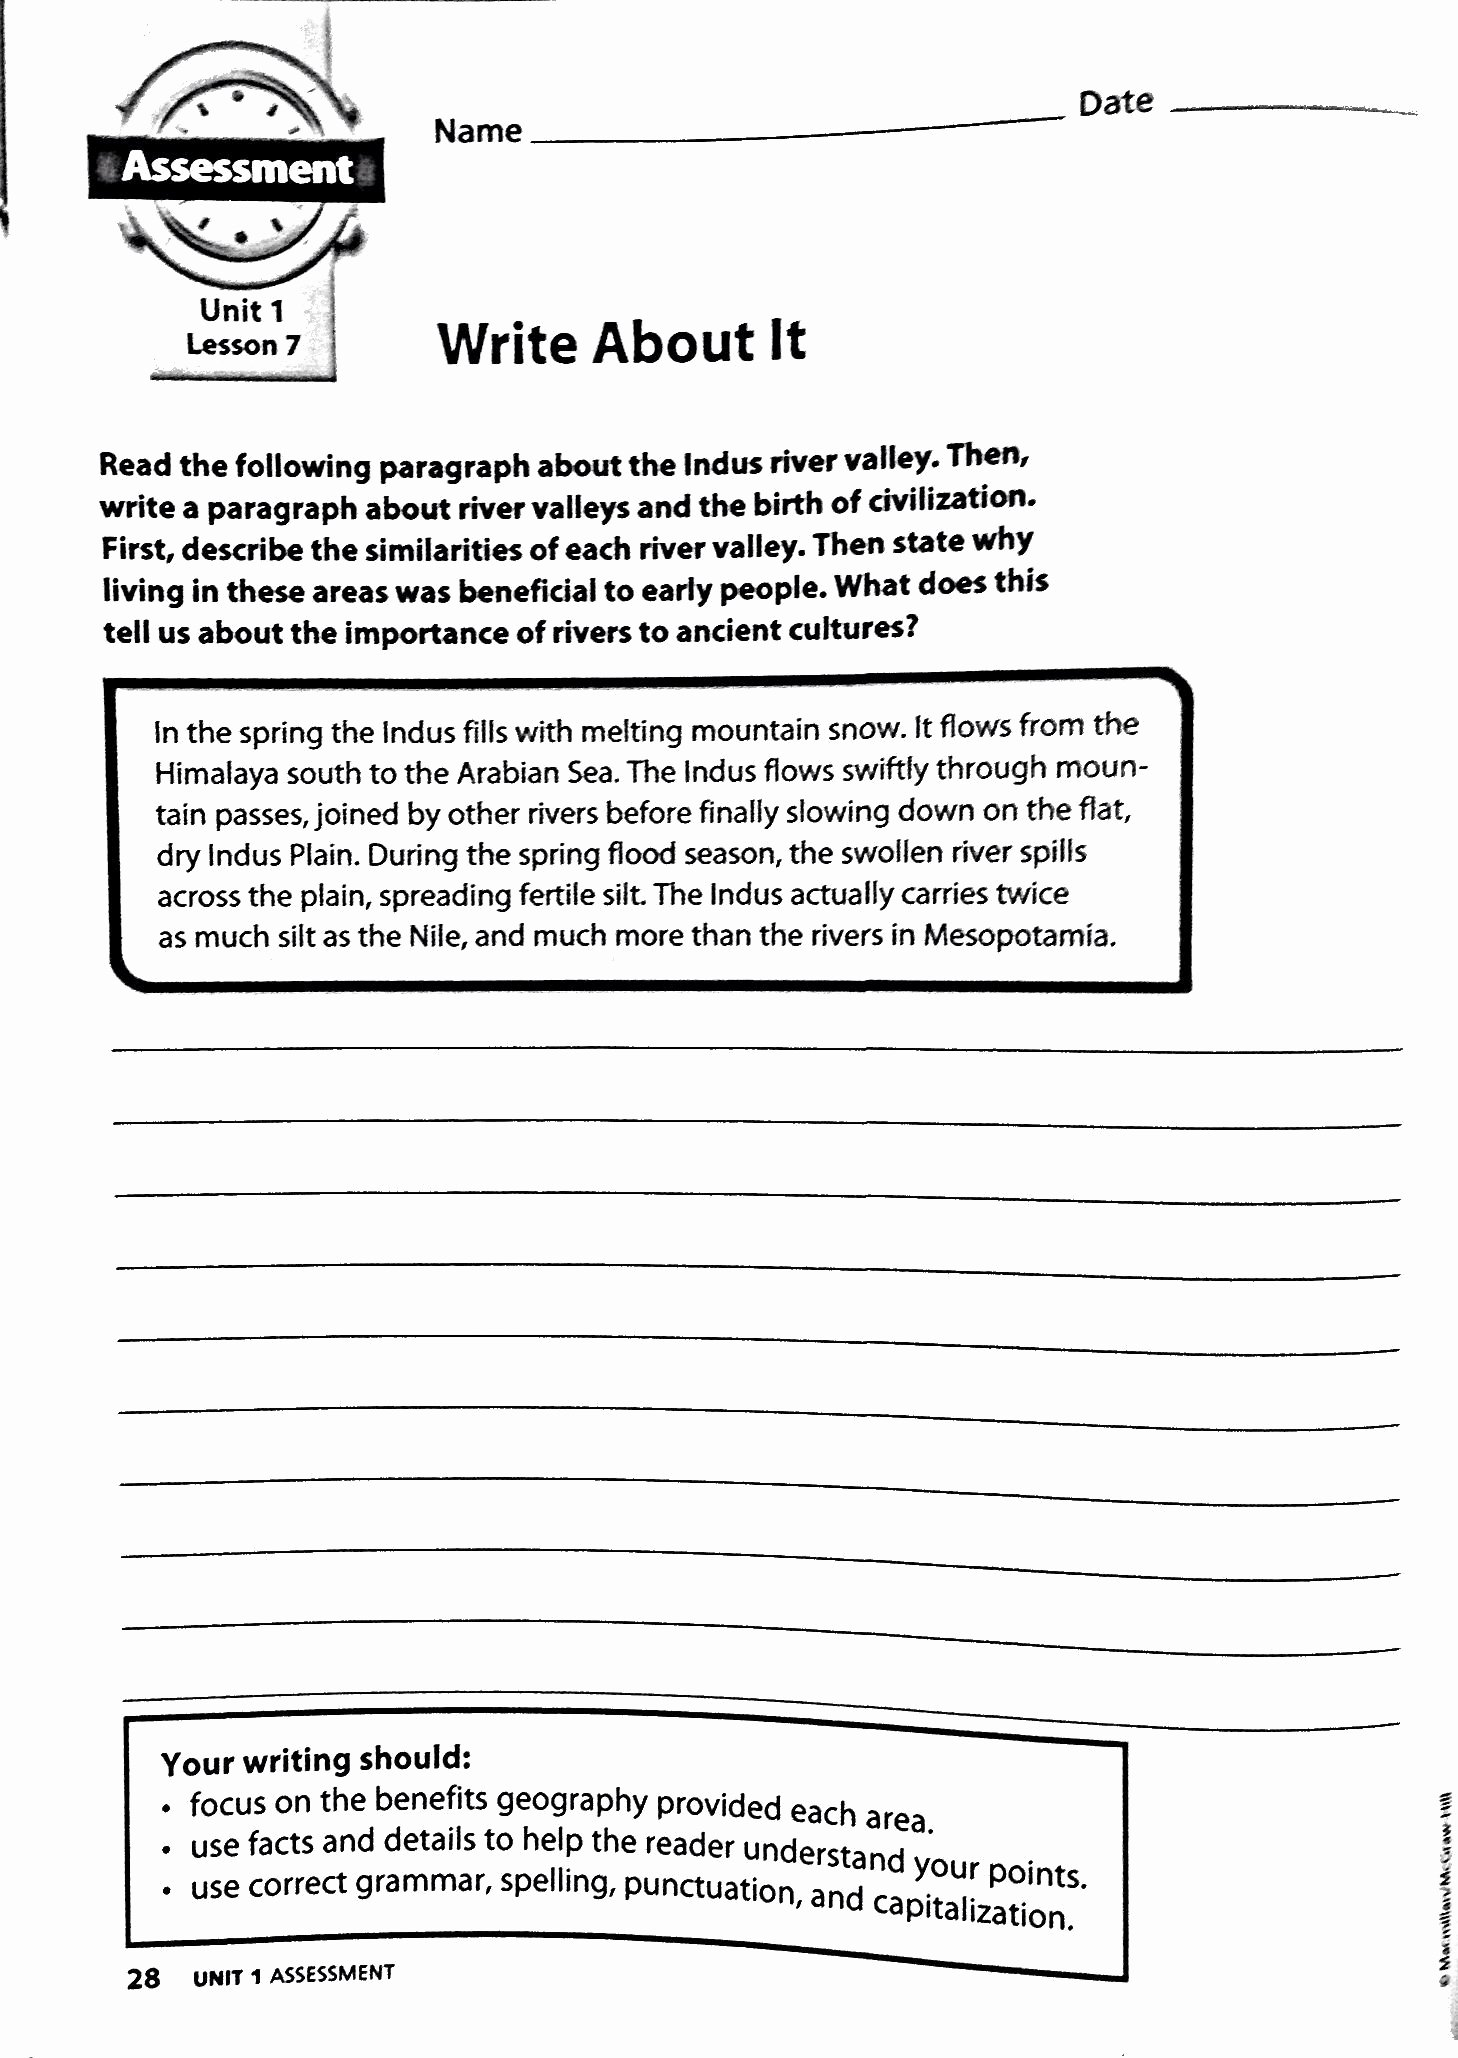 River Valley Civilizations Worksheet Answers top Ancient River Valley Civilizations Worksheet